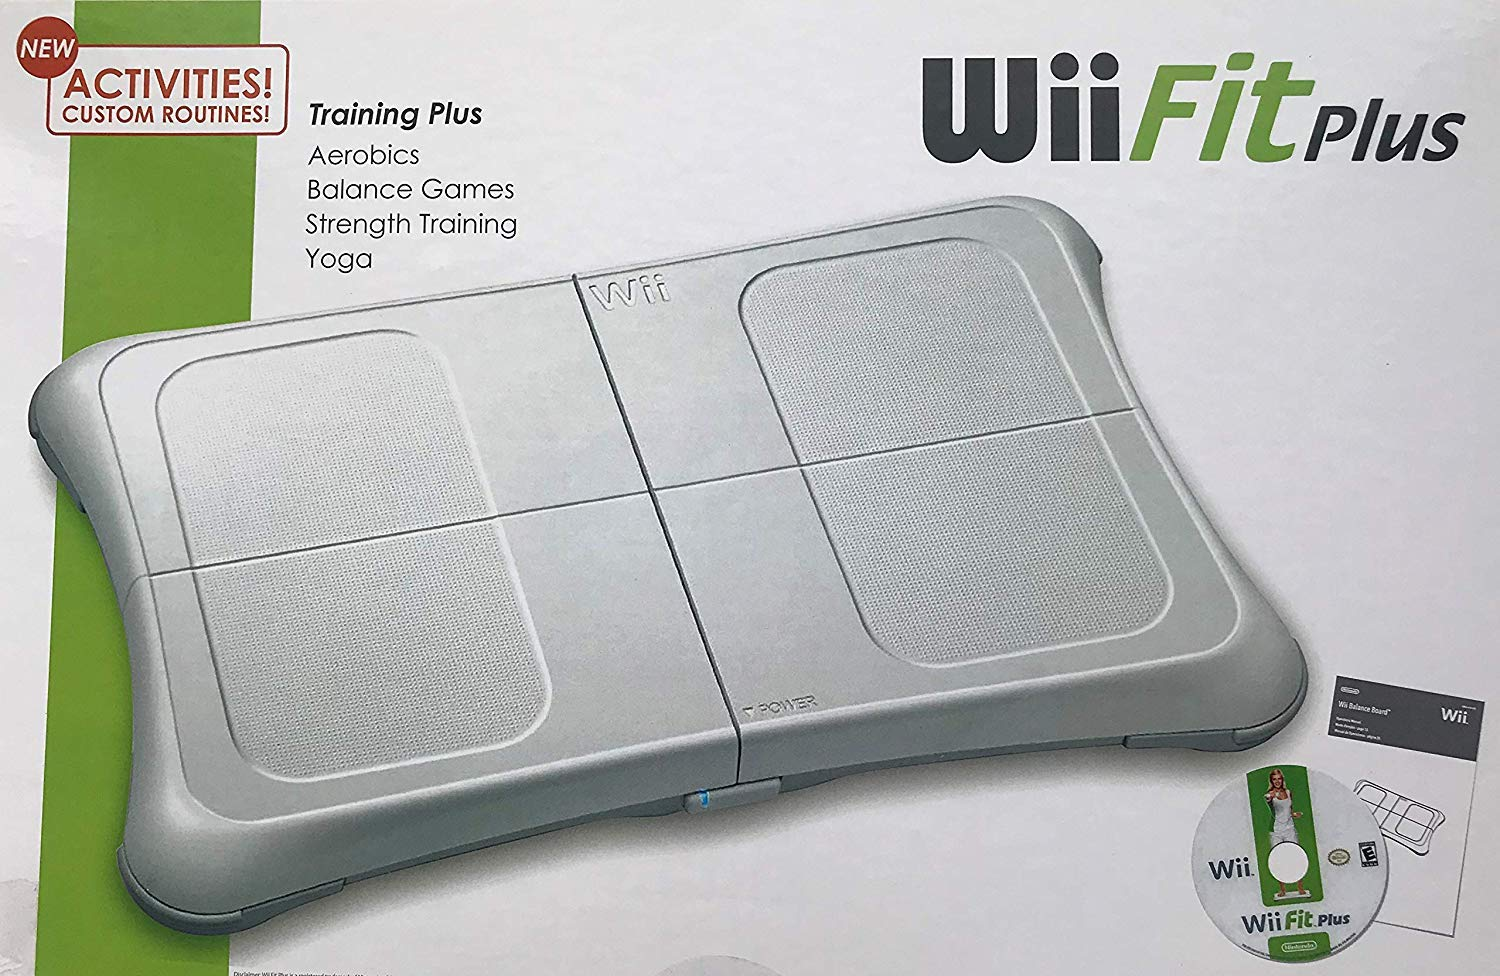 Amazon.com: Wii Fit Plus with Balance Board (New, Brown Box ...